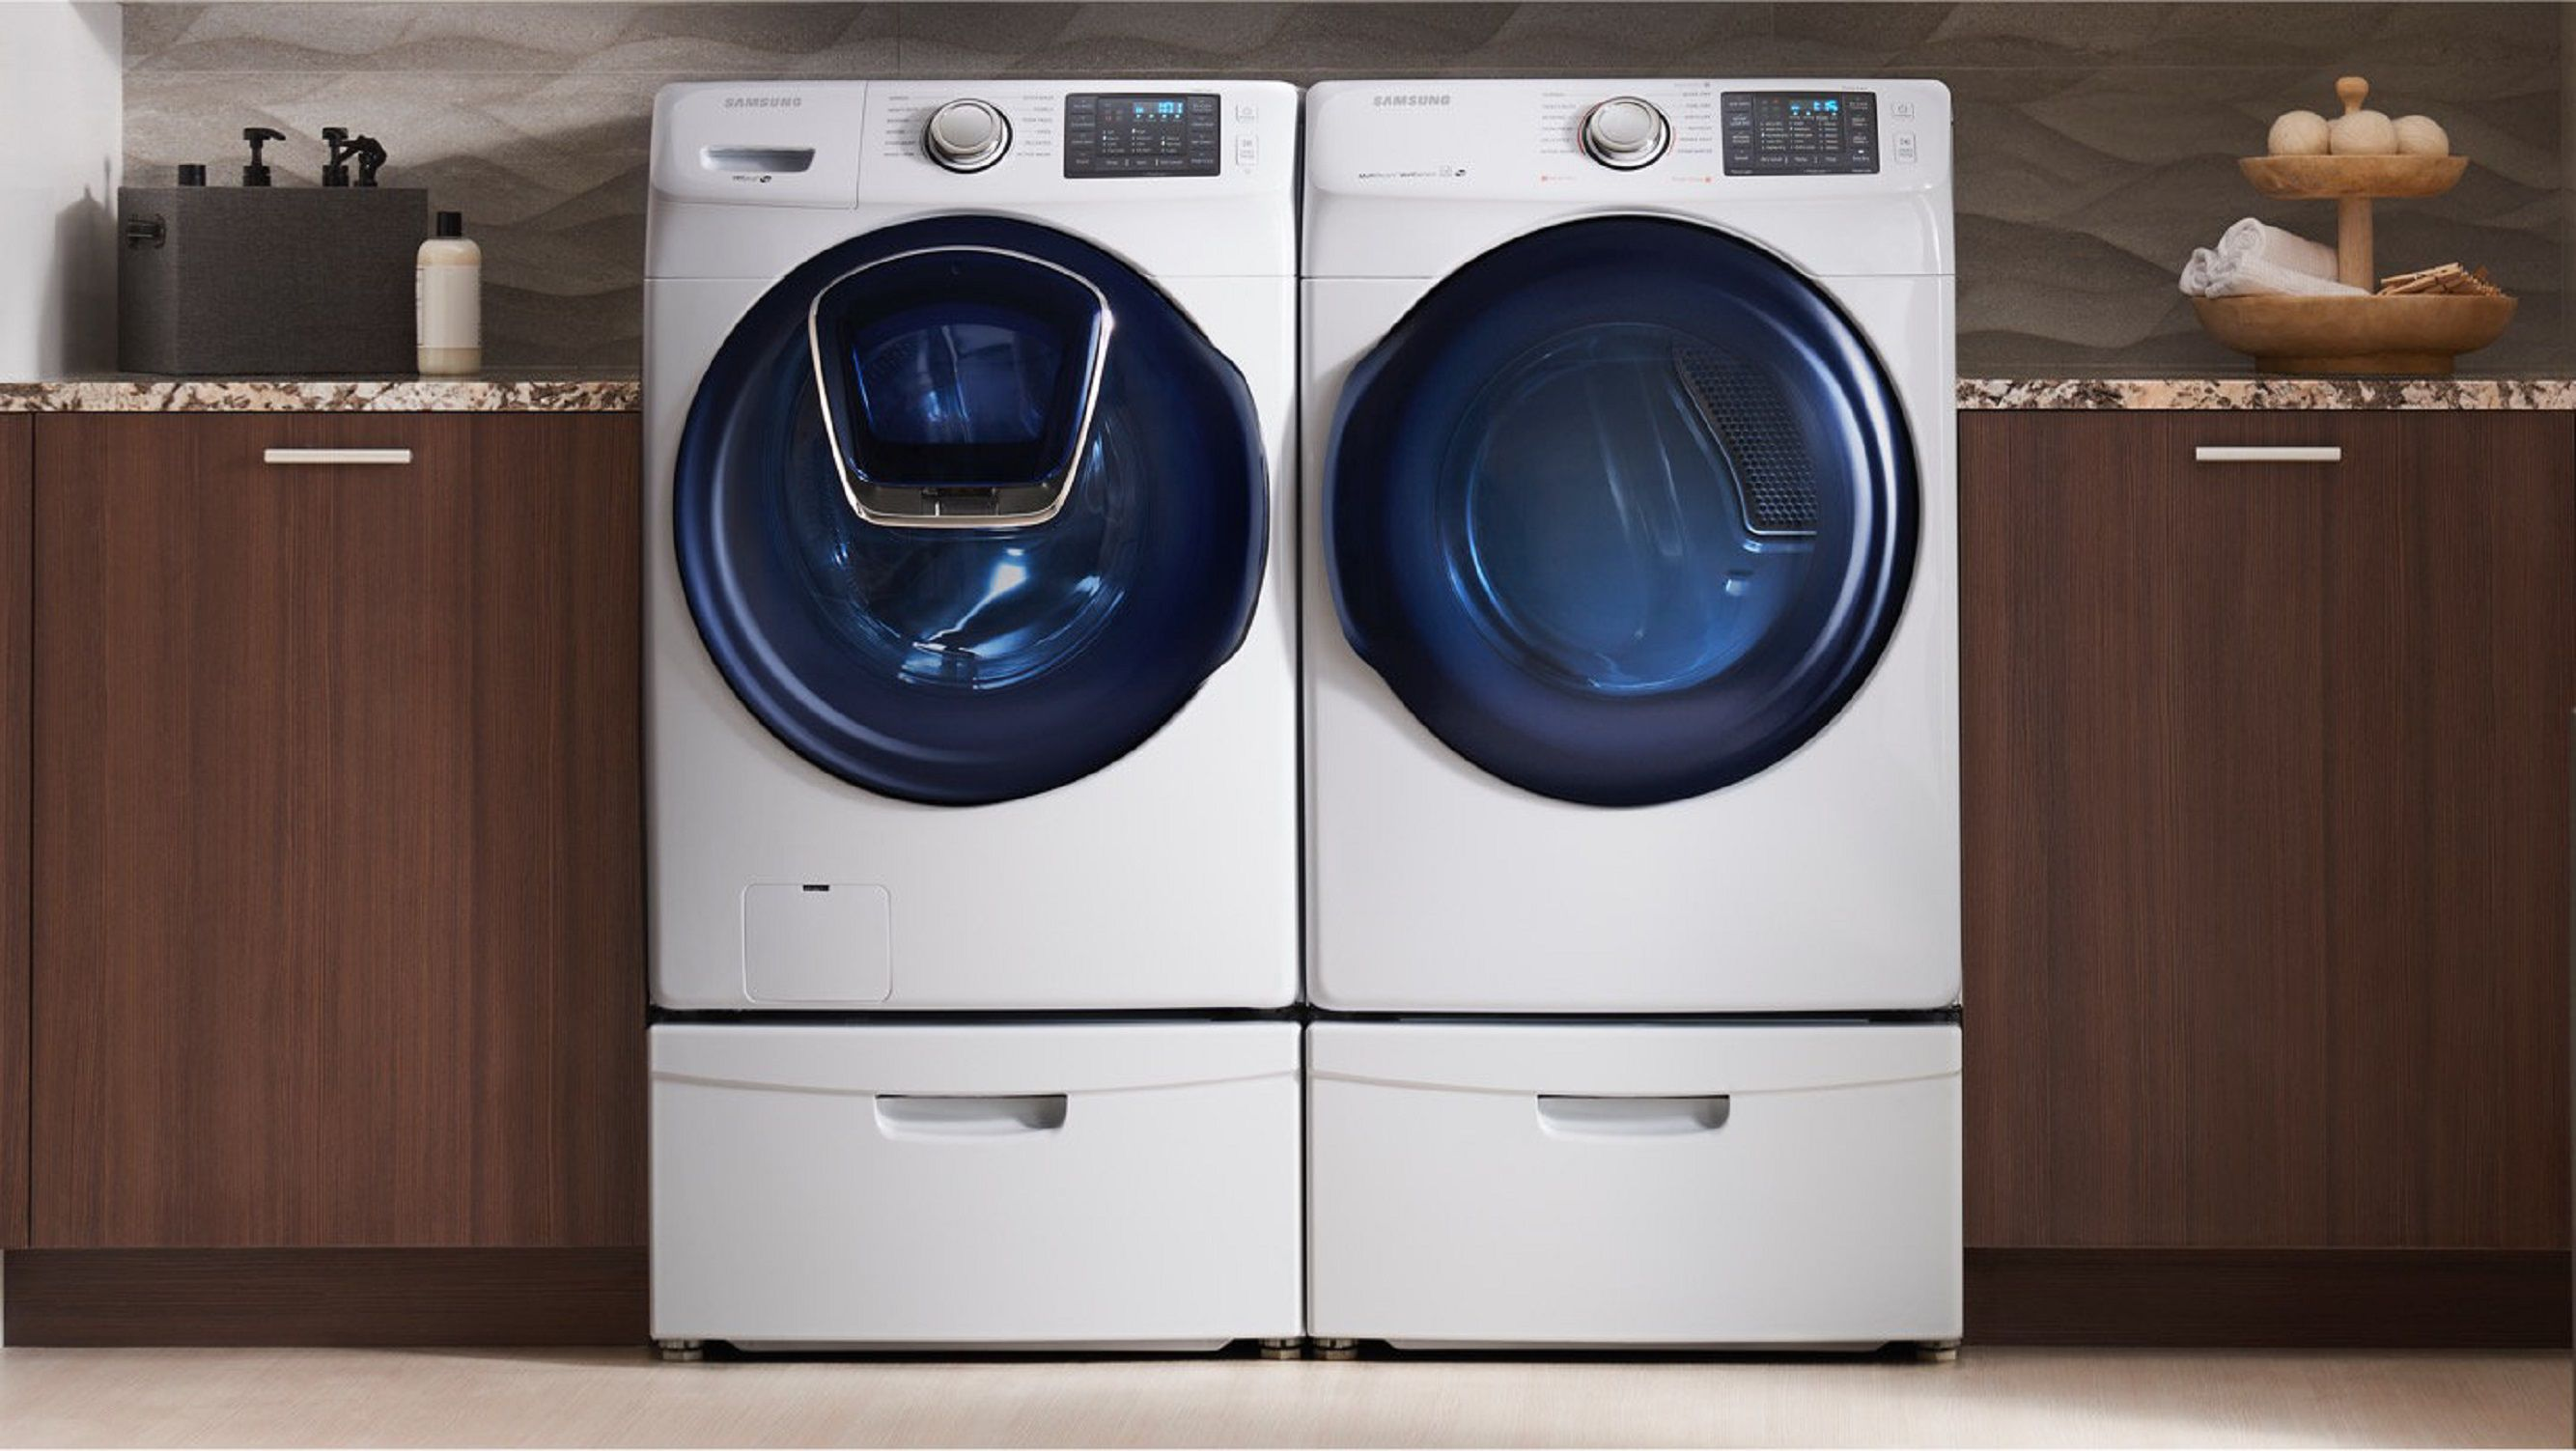 Determining the Proper Voltage for Your Dryer